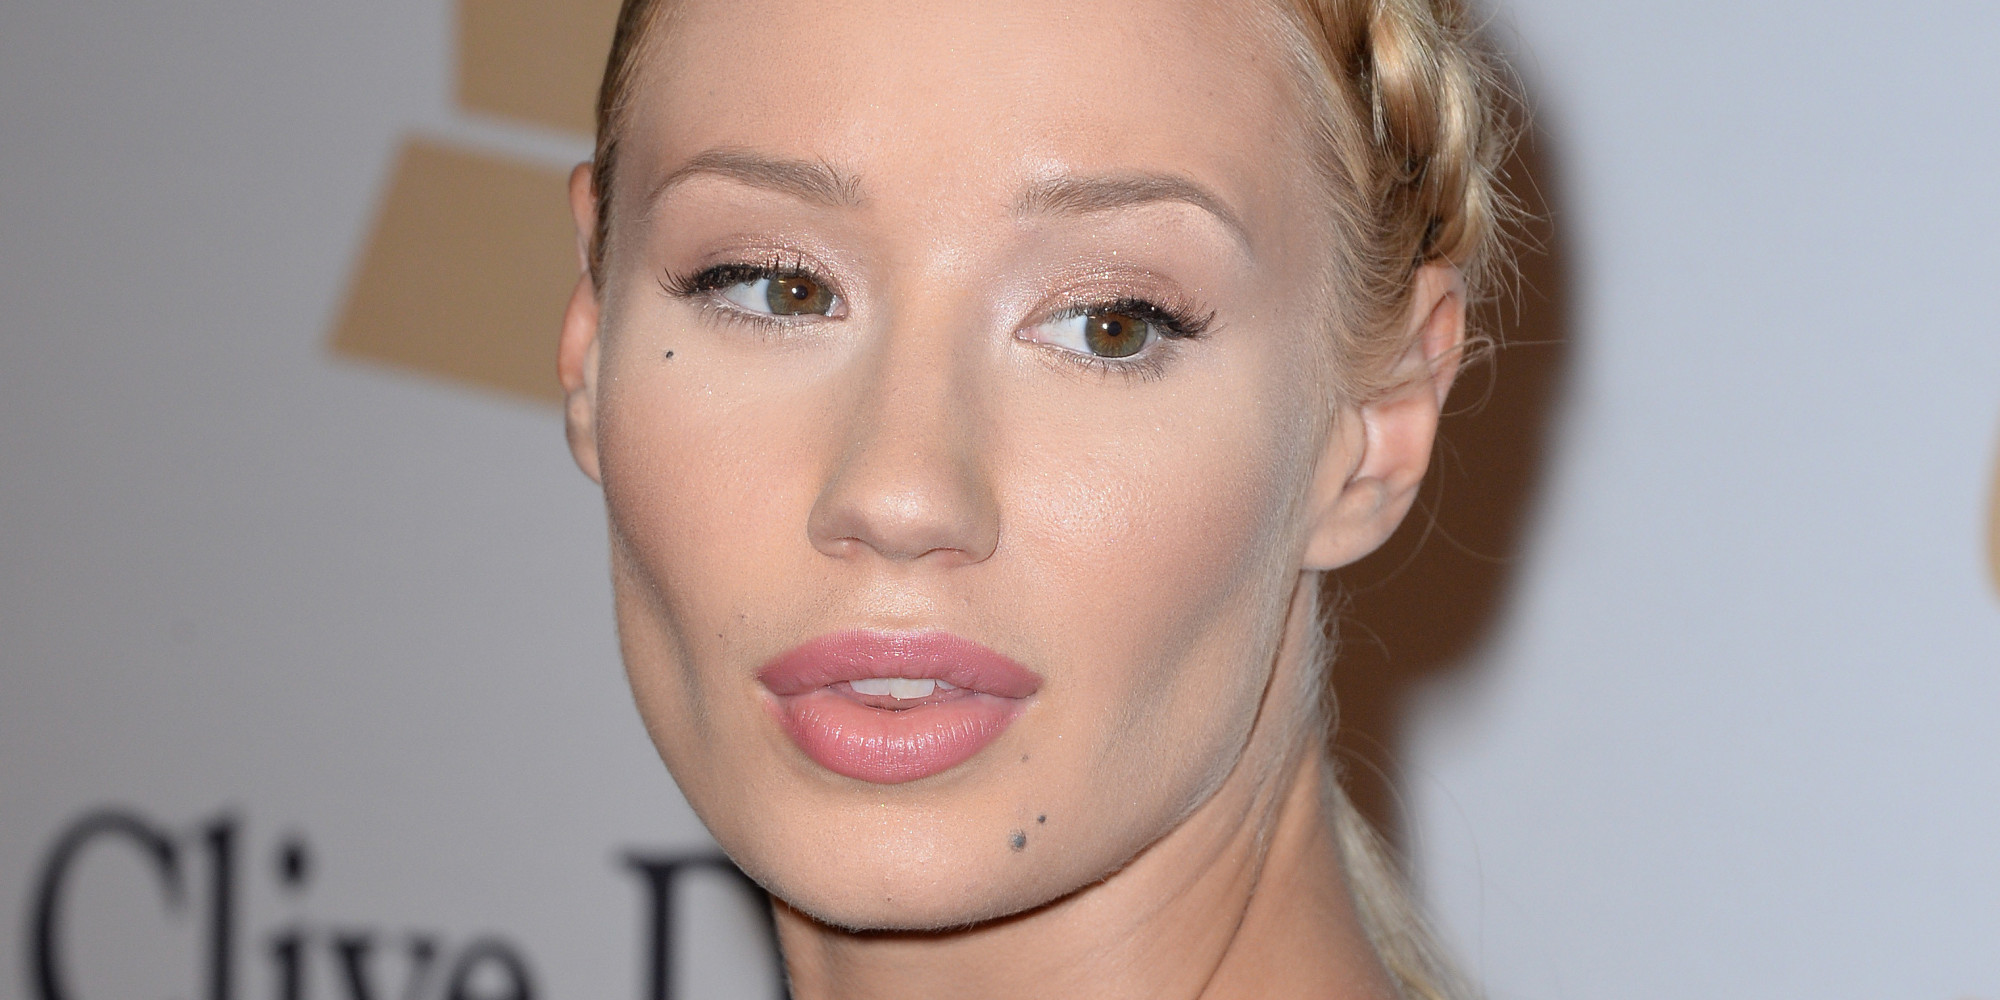 Iggy Azalea Face Iggy Azalea Face Iggy Azalea Glad To Lose Out To Eminem